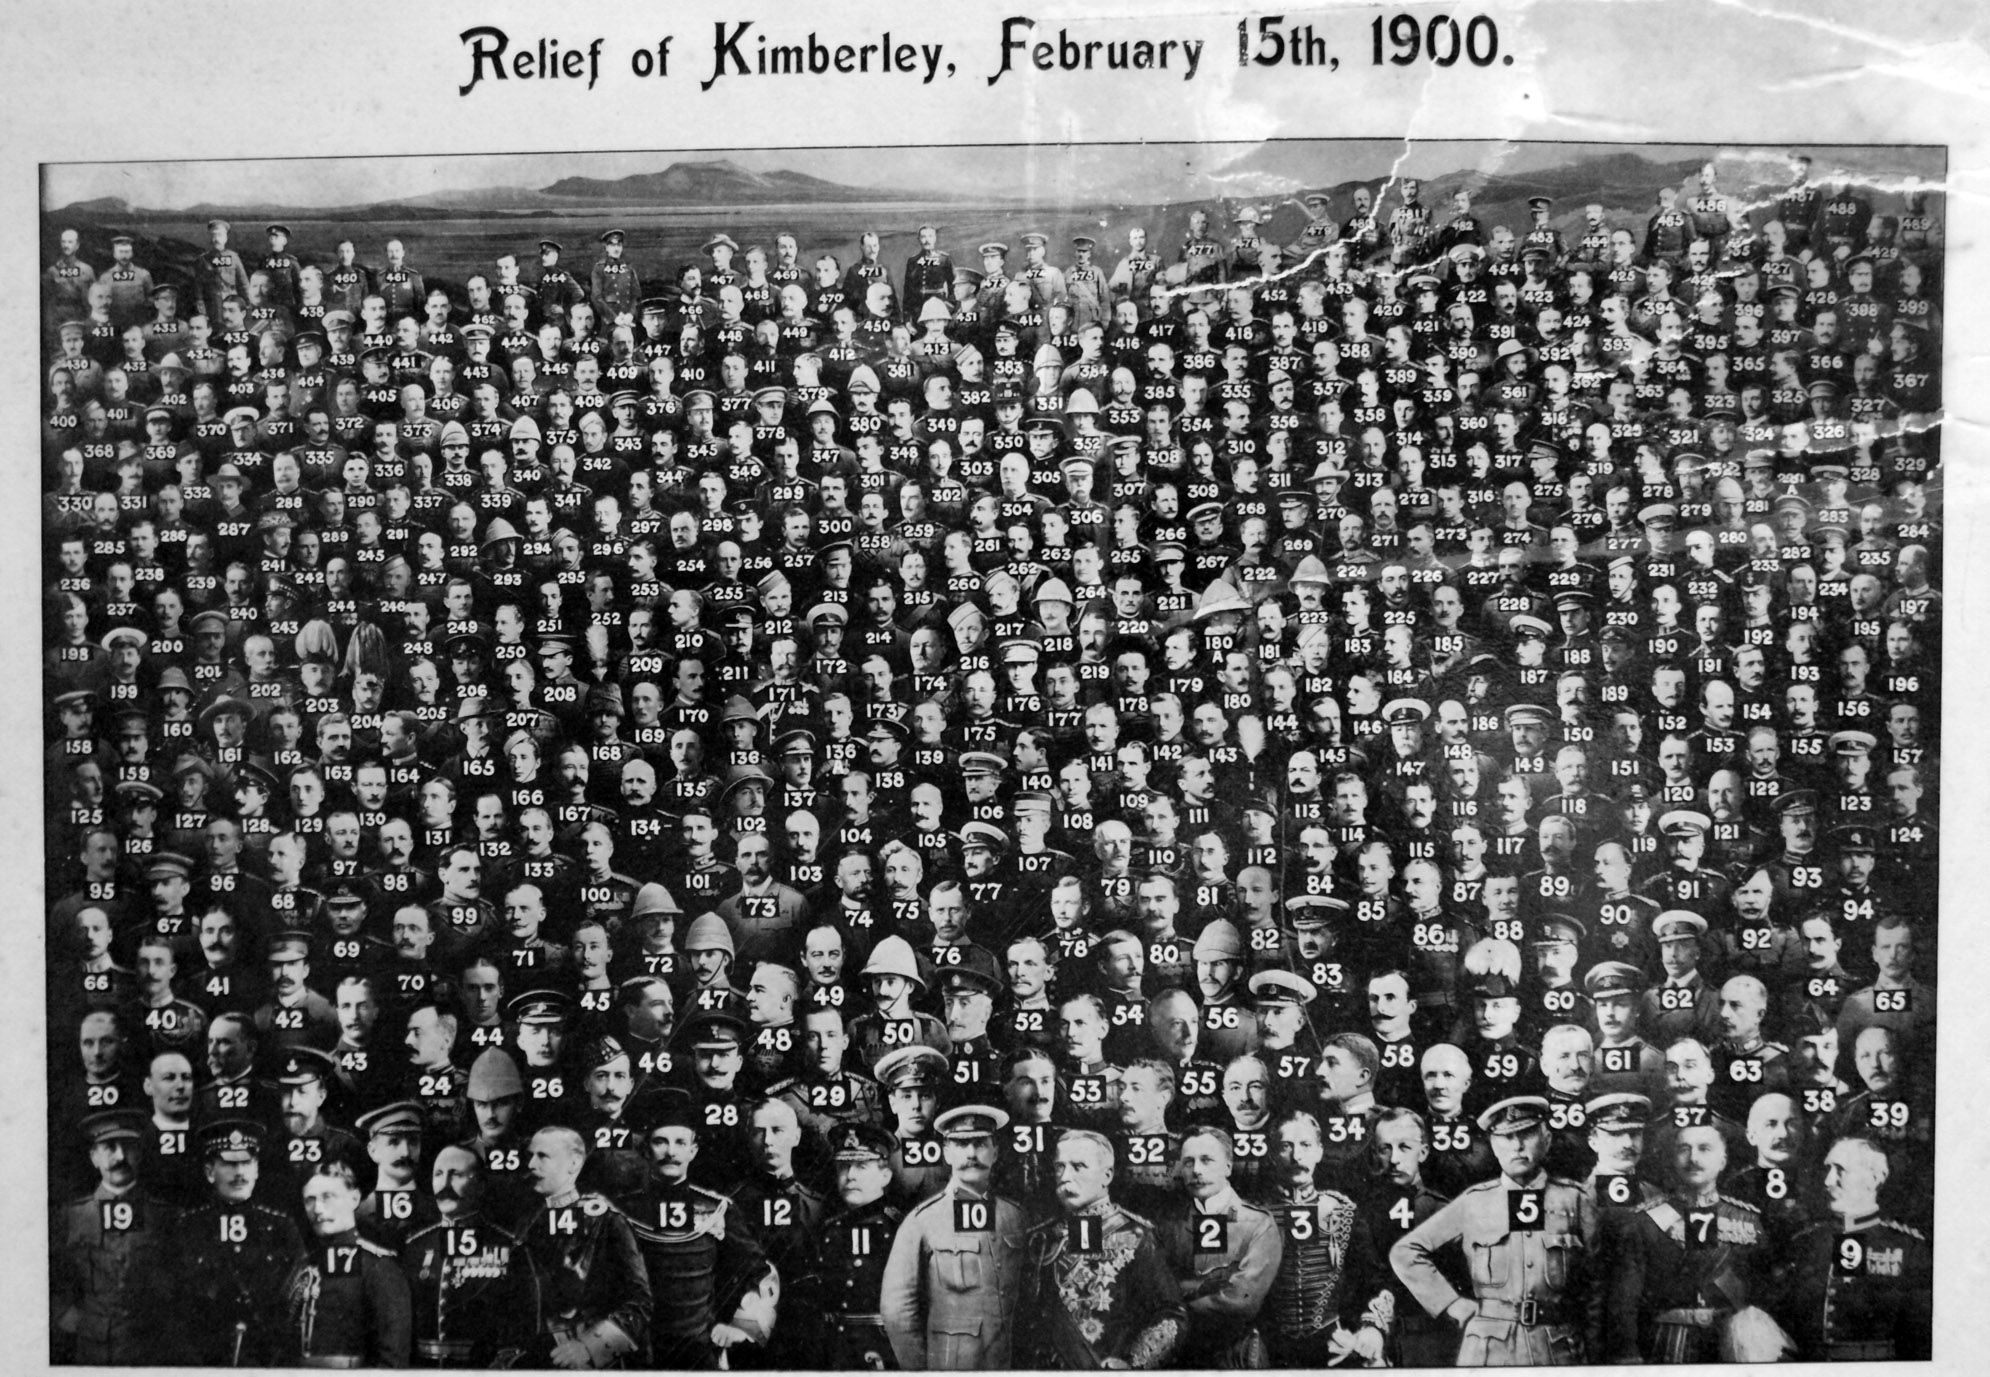 This image and the close-up below shows almost 500 officers present at the Relief of Kimberley. Captain E.R. Gordon is identified in the caption as No. 167. Several copies of this photomontage are known to exist (family collection).